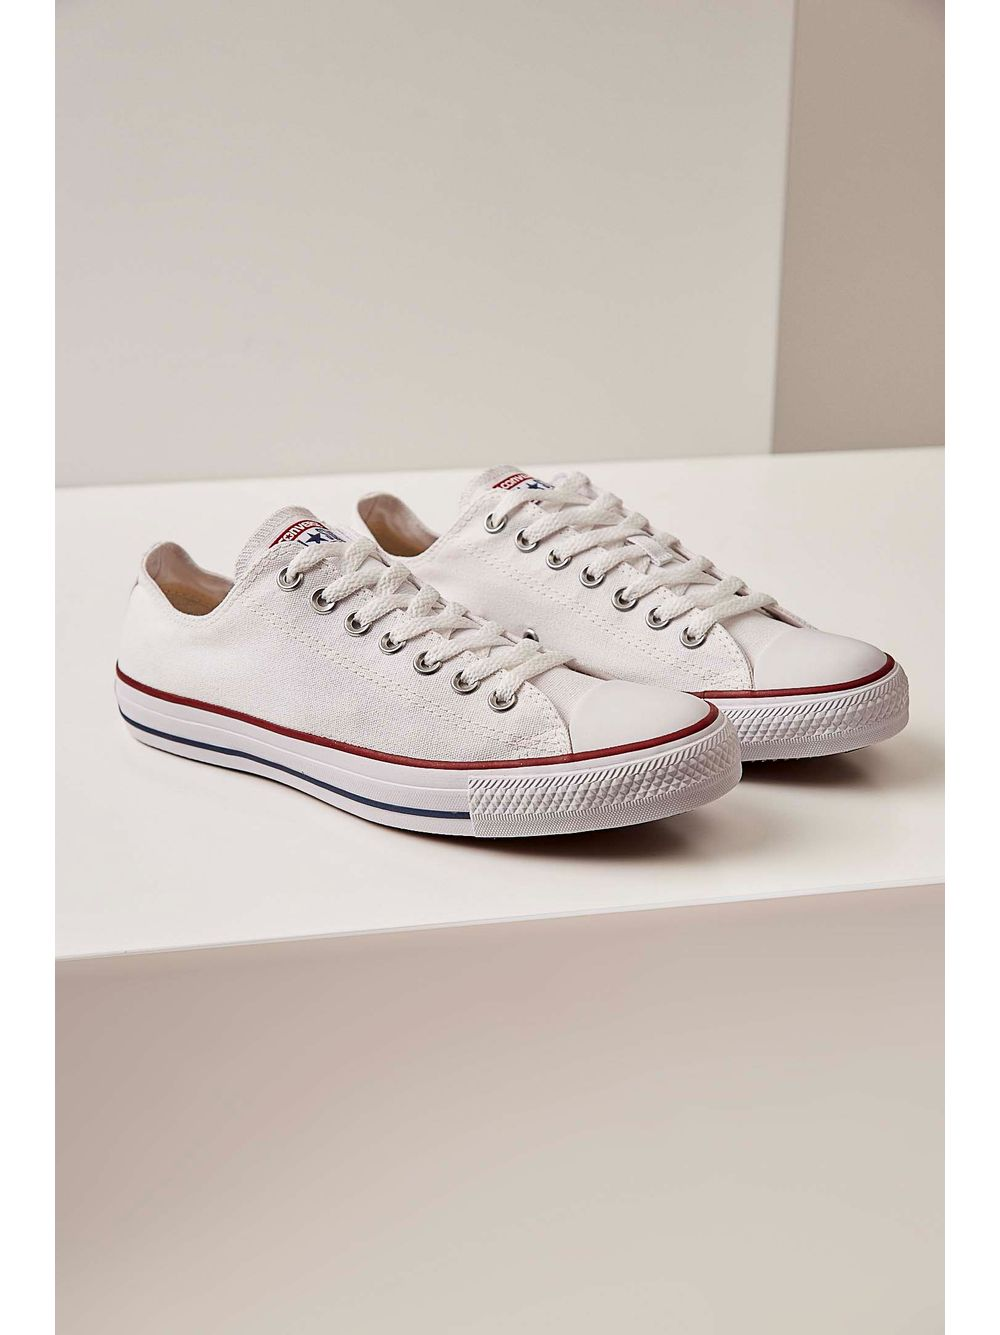 98b68f9842e Previous. Tenis-Casual-All-Star-Converse-Branco ...